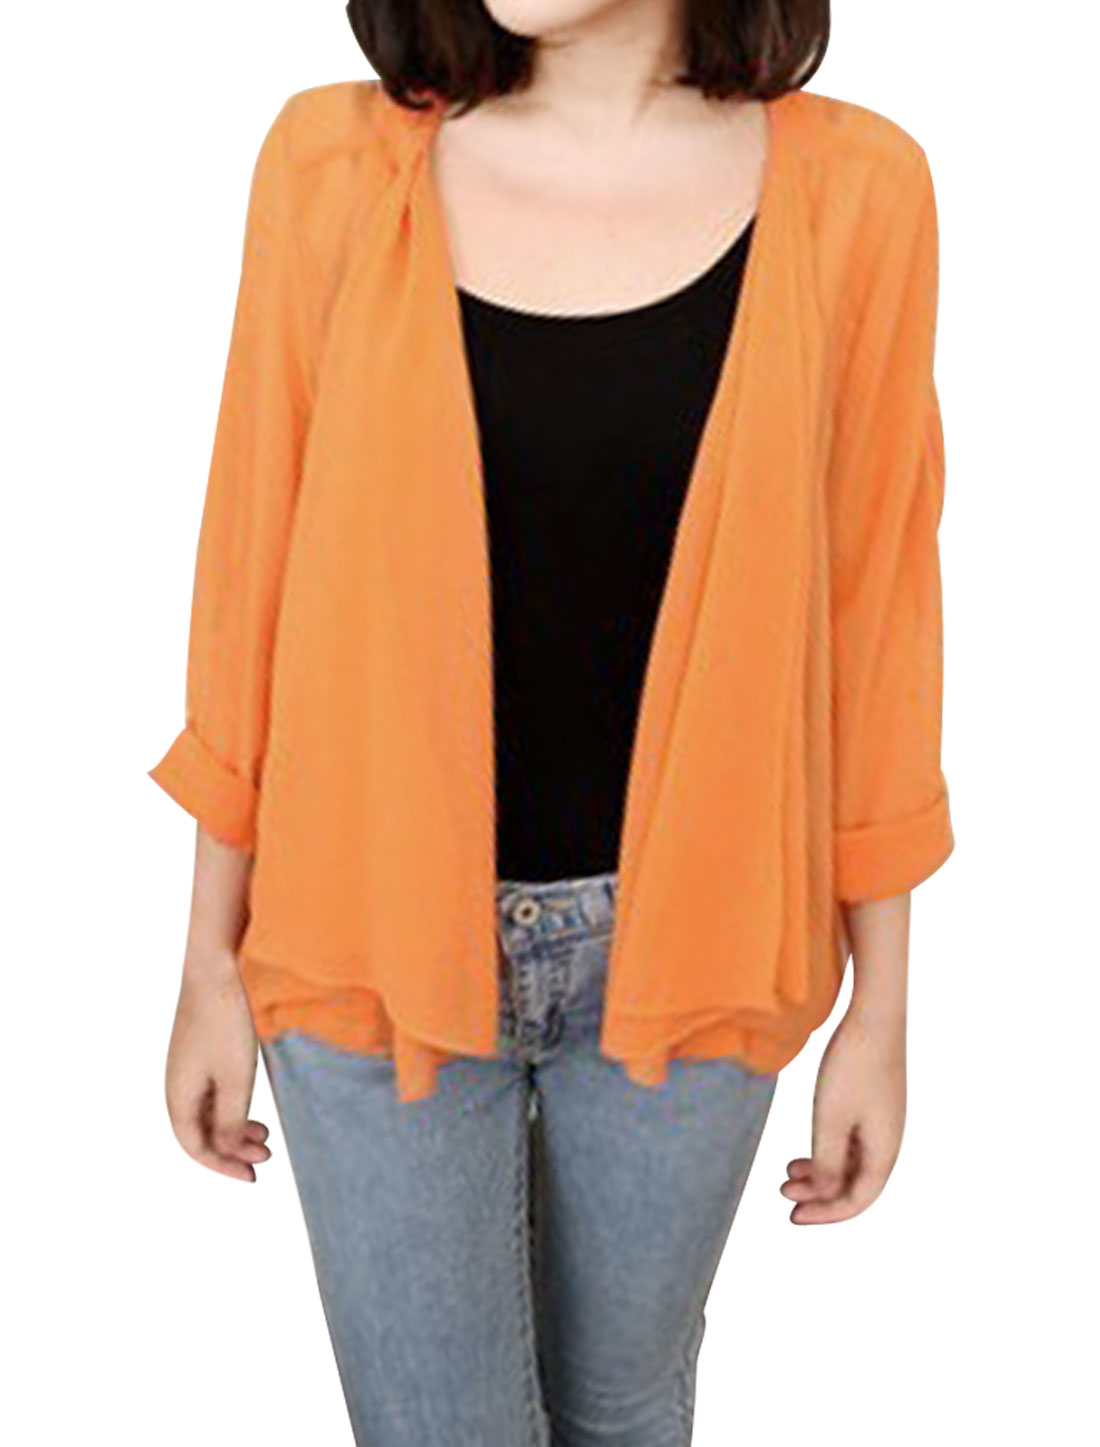 Pleated Shoulders Long Sleeve Front Opening Orange Color Jacket XS for Lady